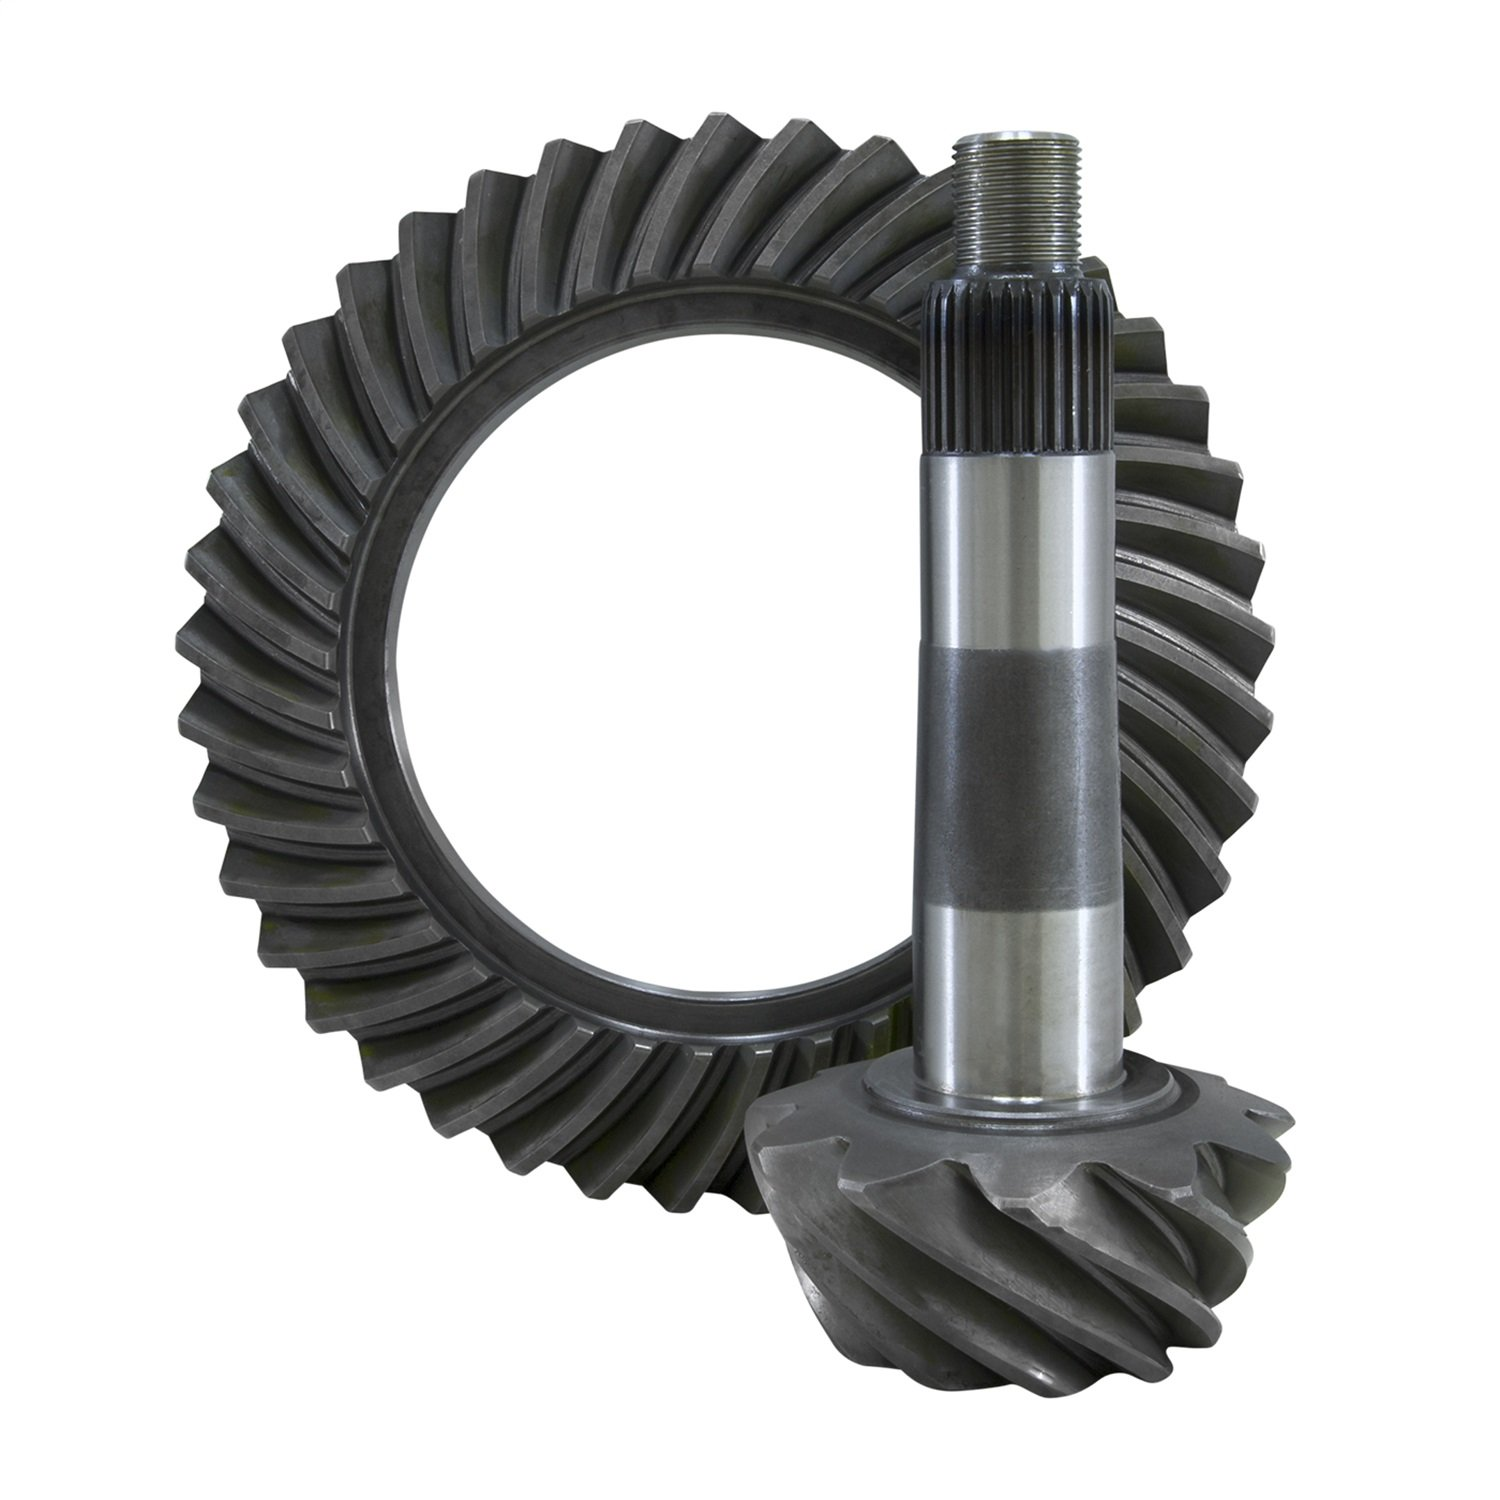 Ring /& Pinion Gear Set for Toyota 7.5 Reverse Rotation Differential ZG T7.5R-456R USA Standard Gear